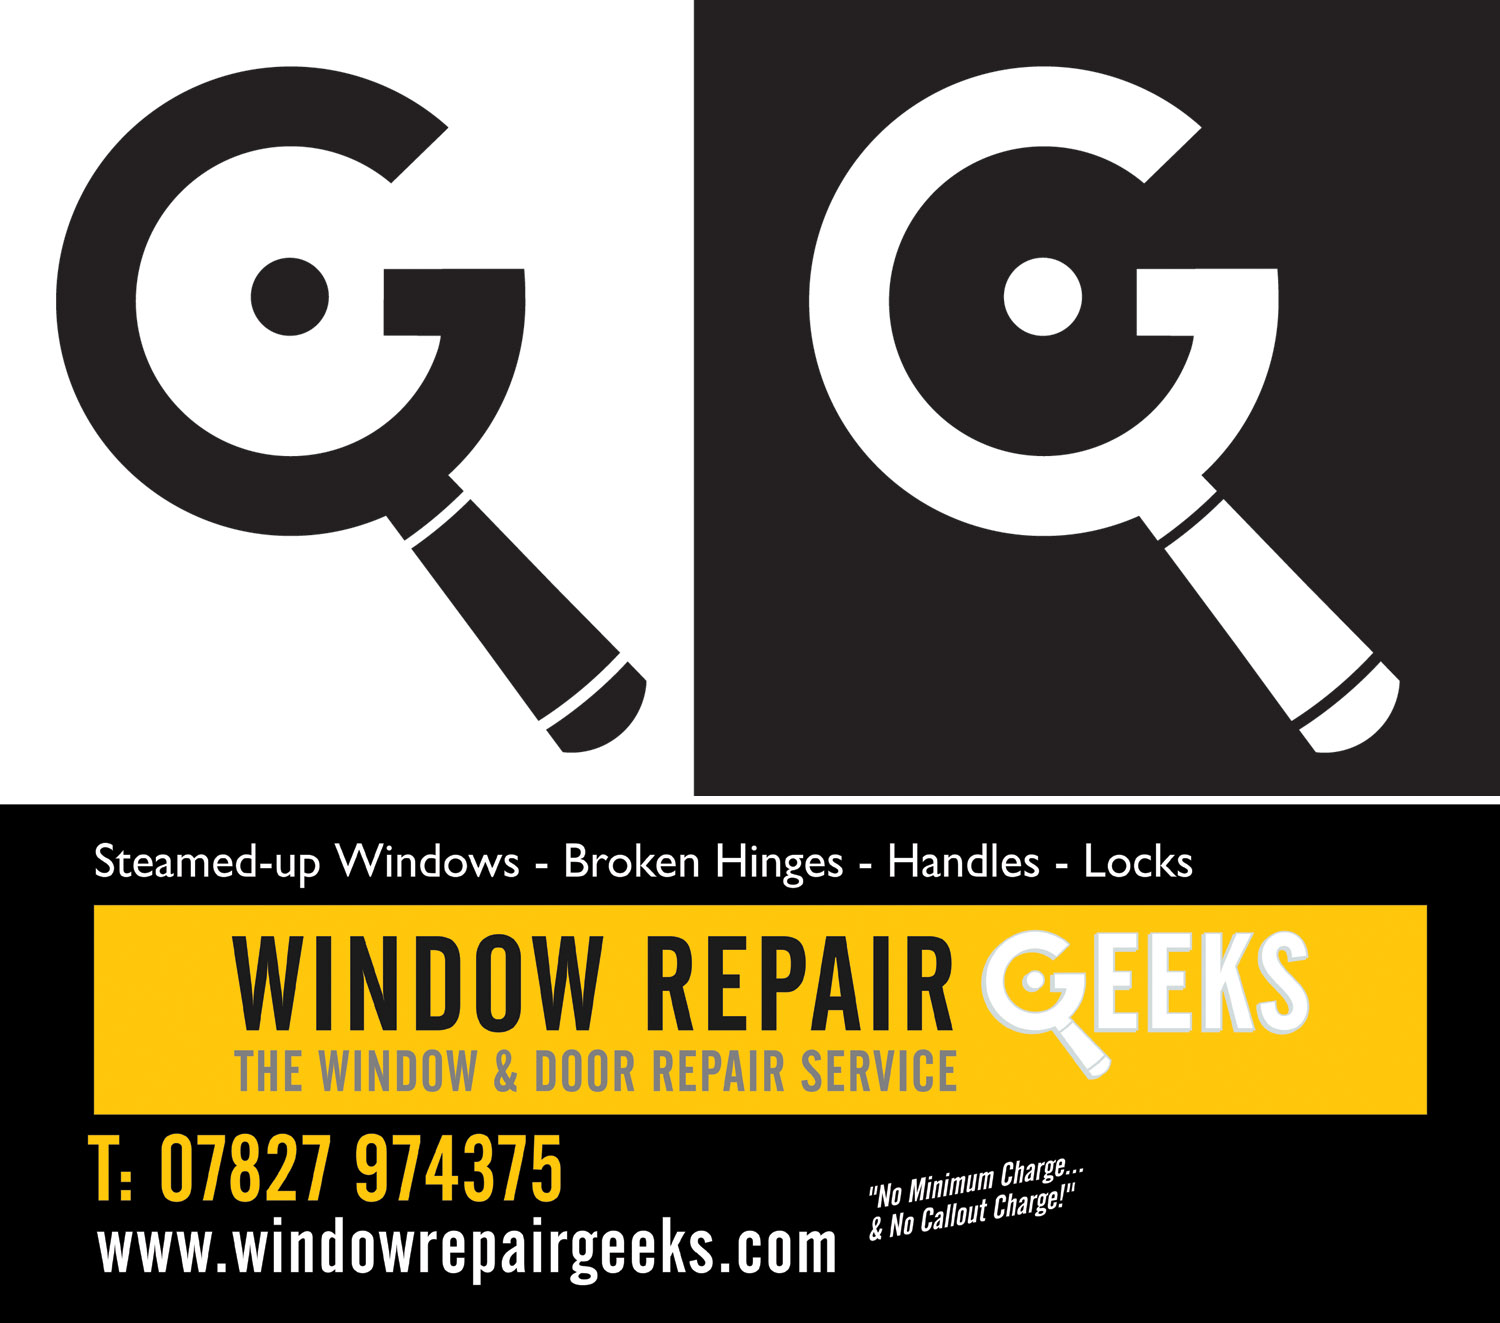 Window Repair Geeks